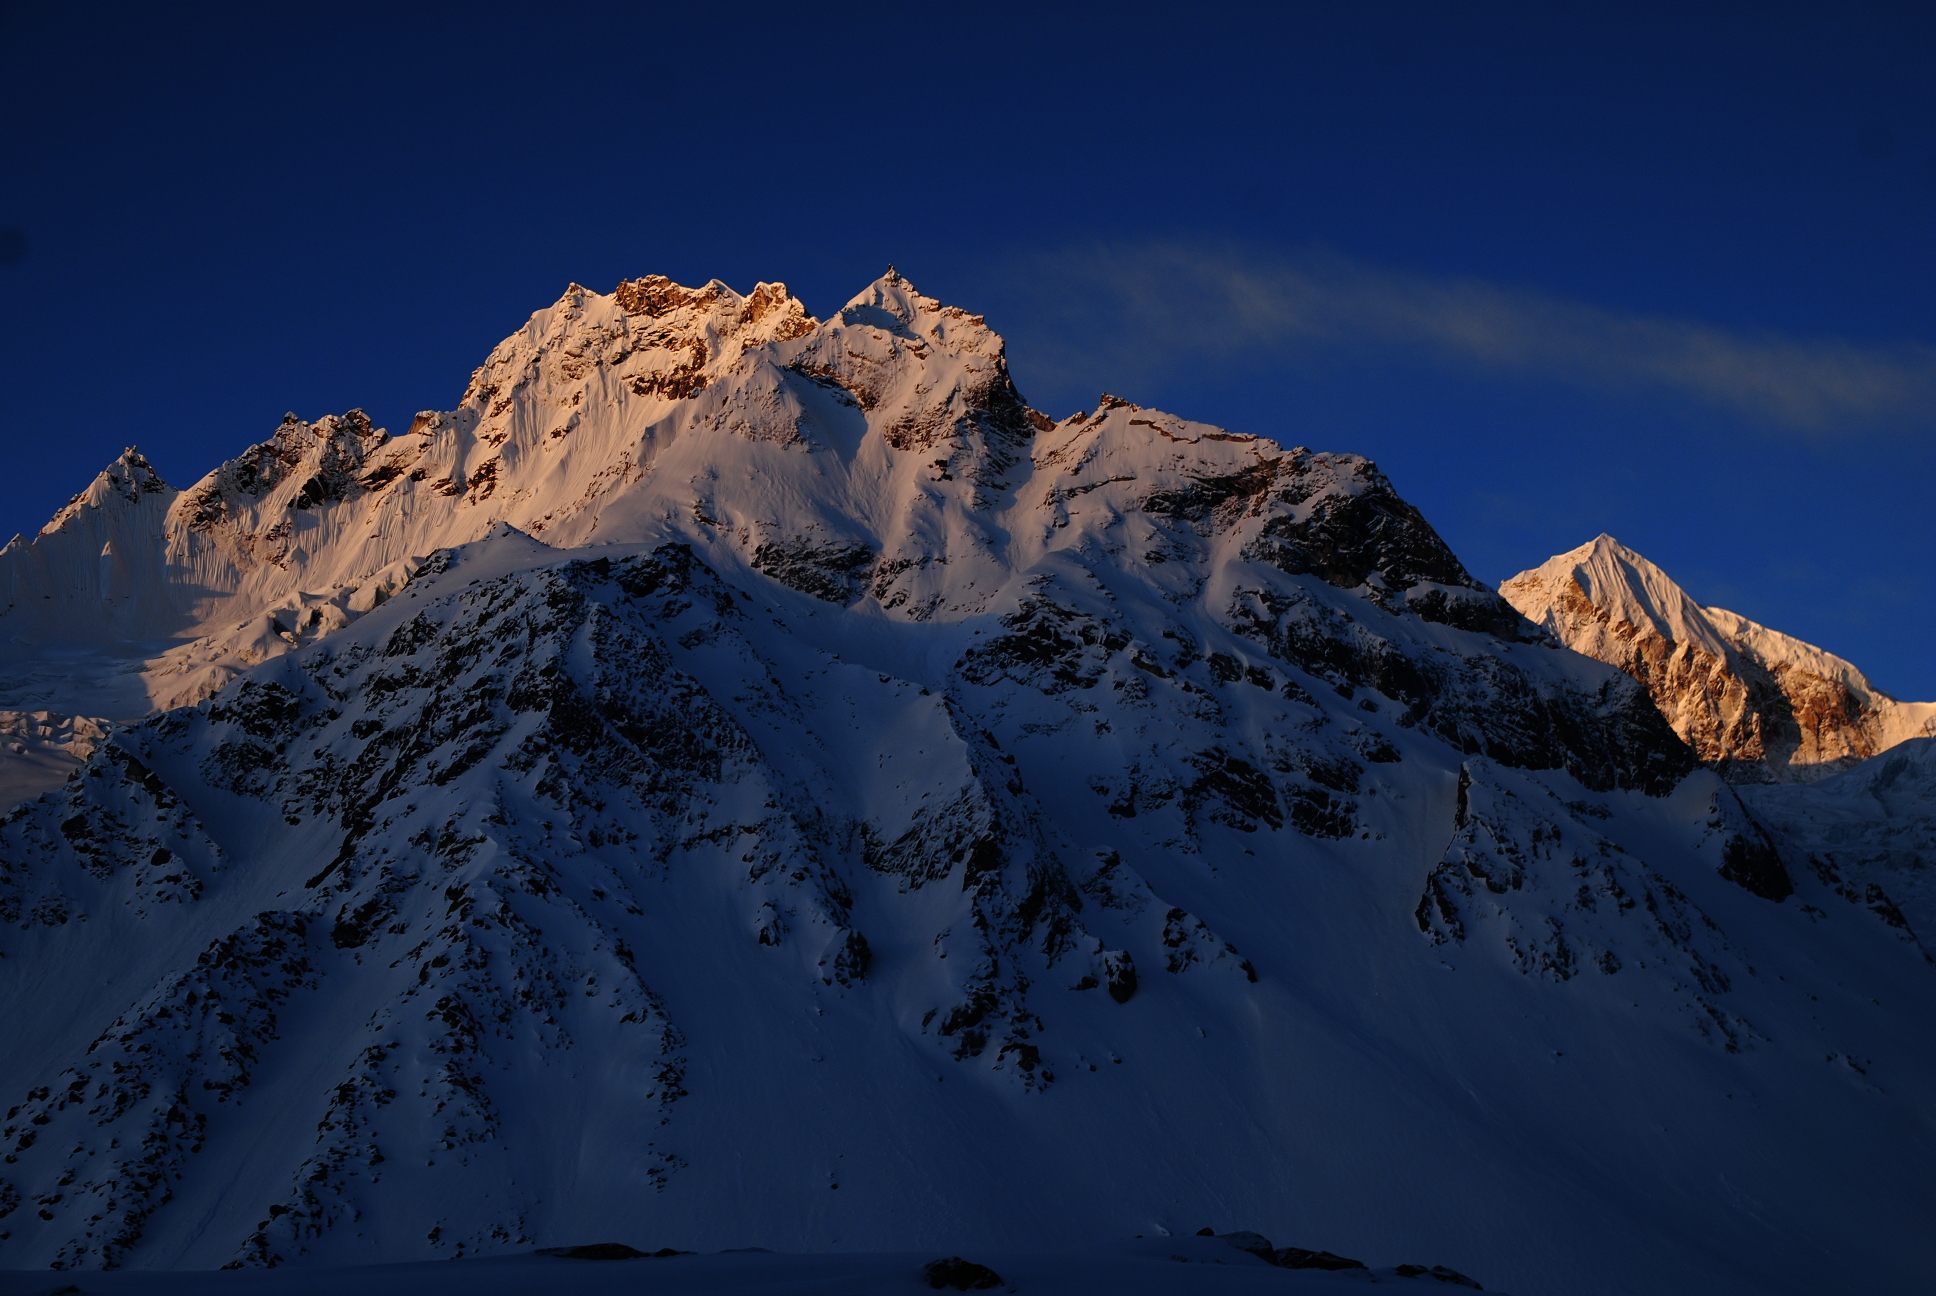 Manaslu_EarlyMorning_AANepal.JPG